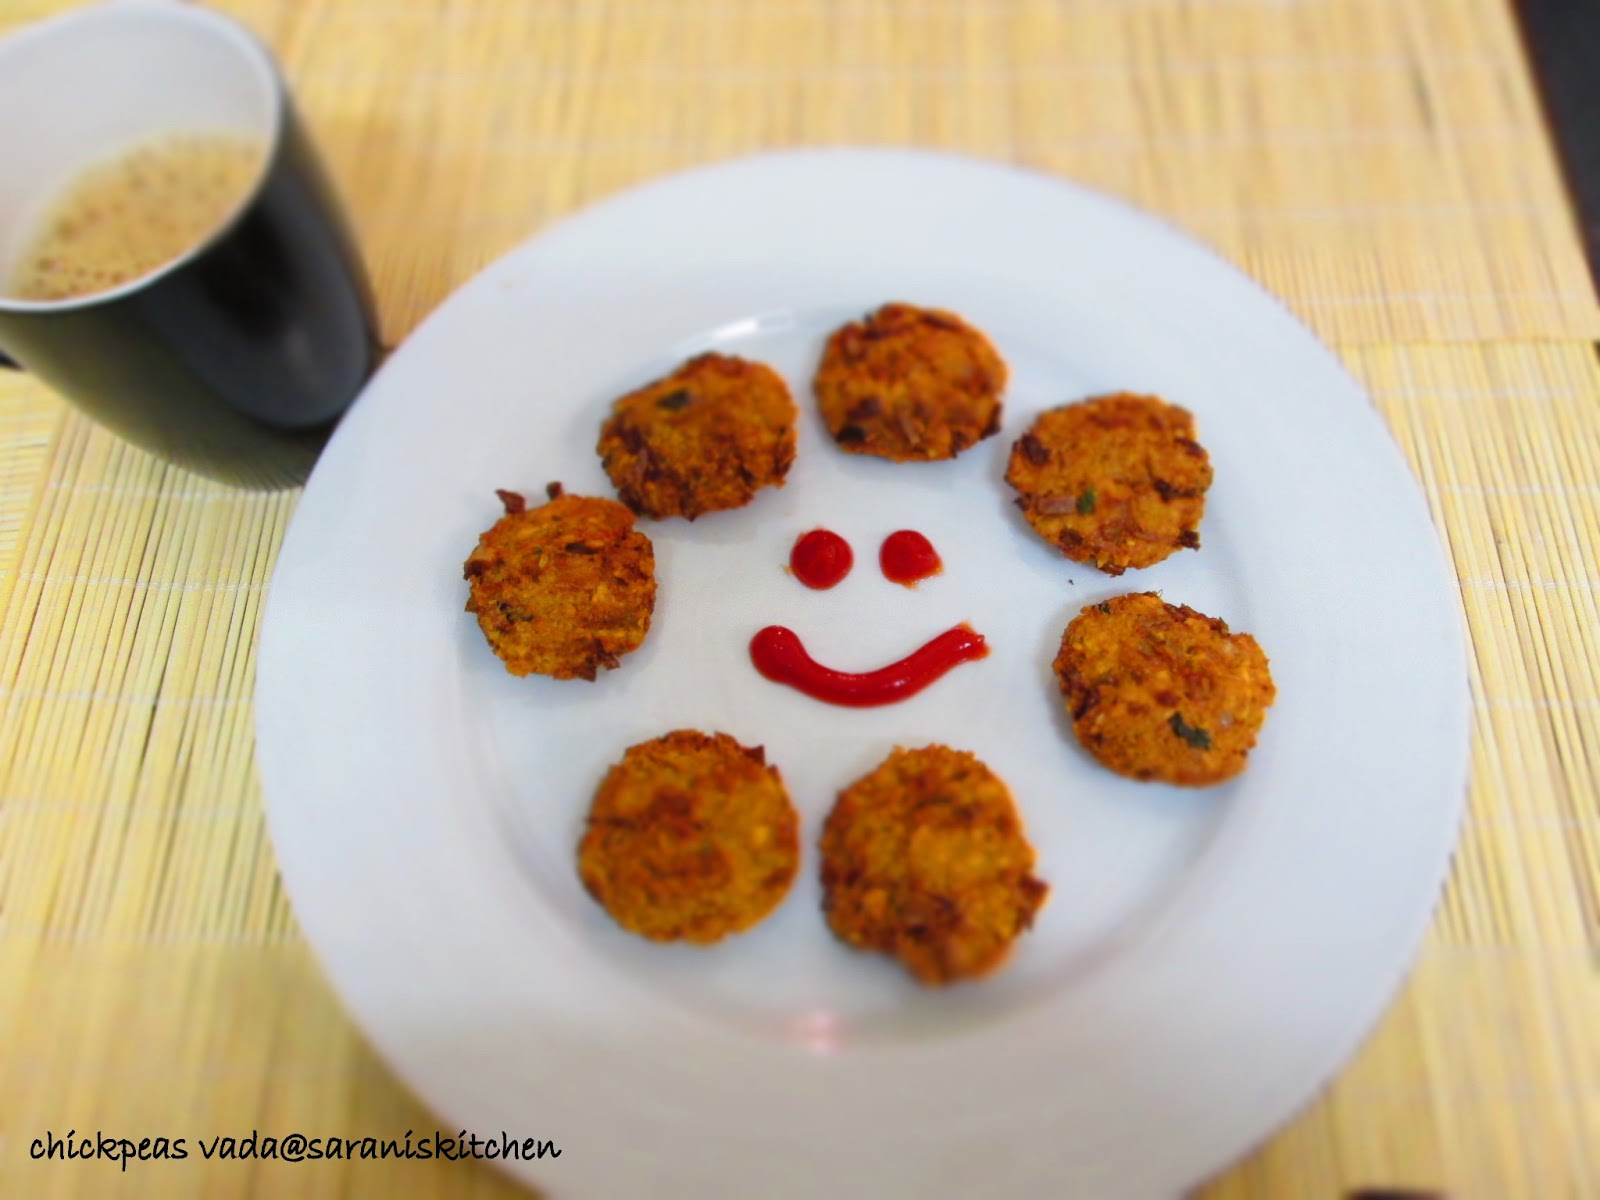 Saranis Kitchen Chickpeas Vada Good Tea Time Snack